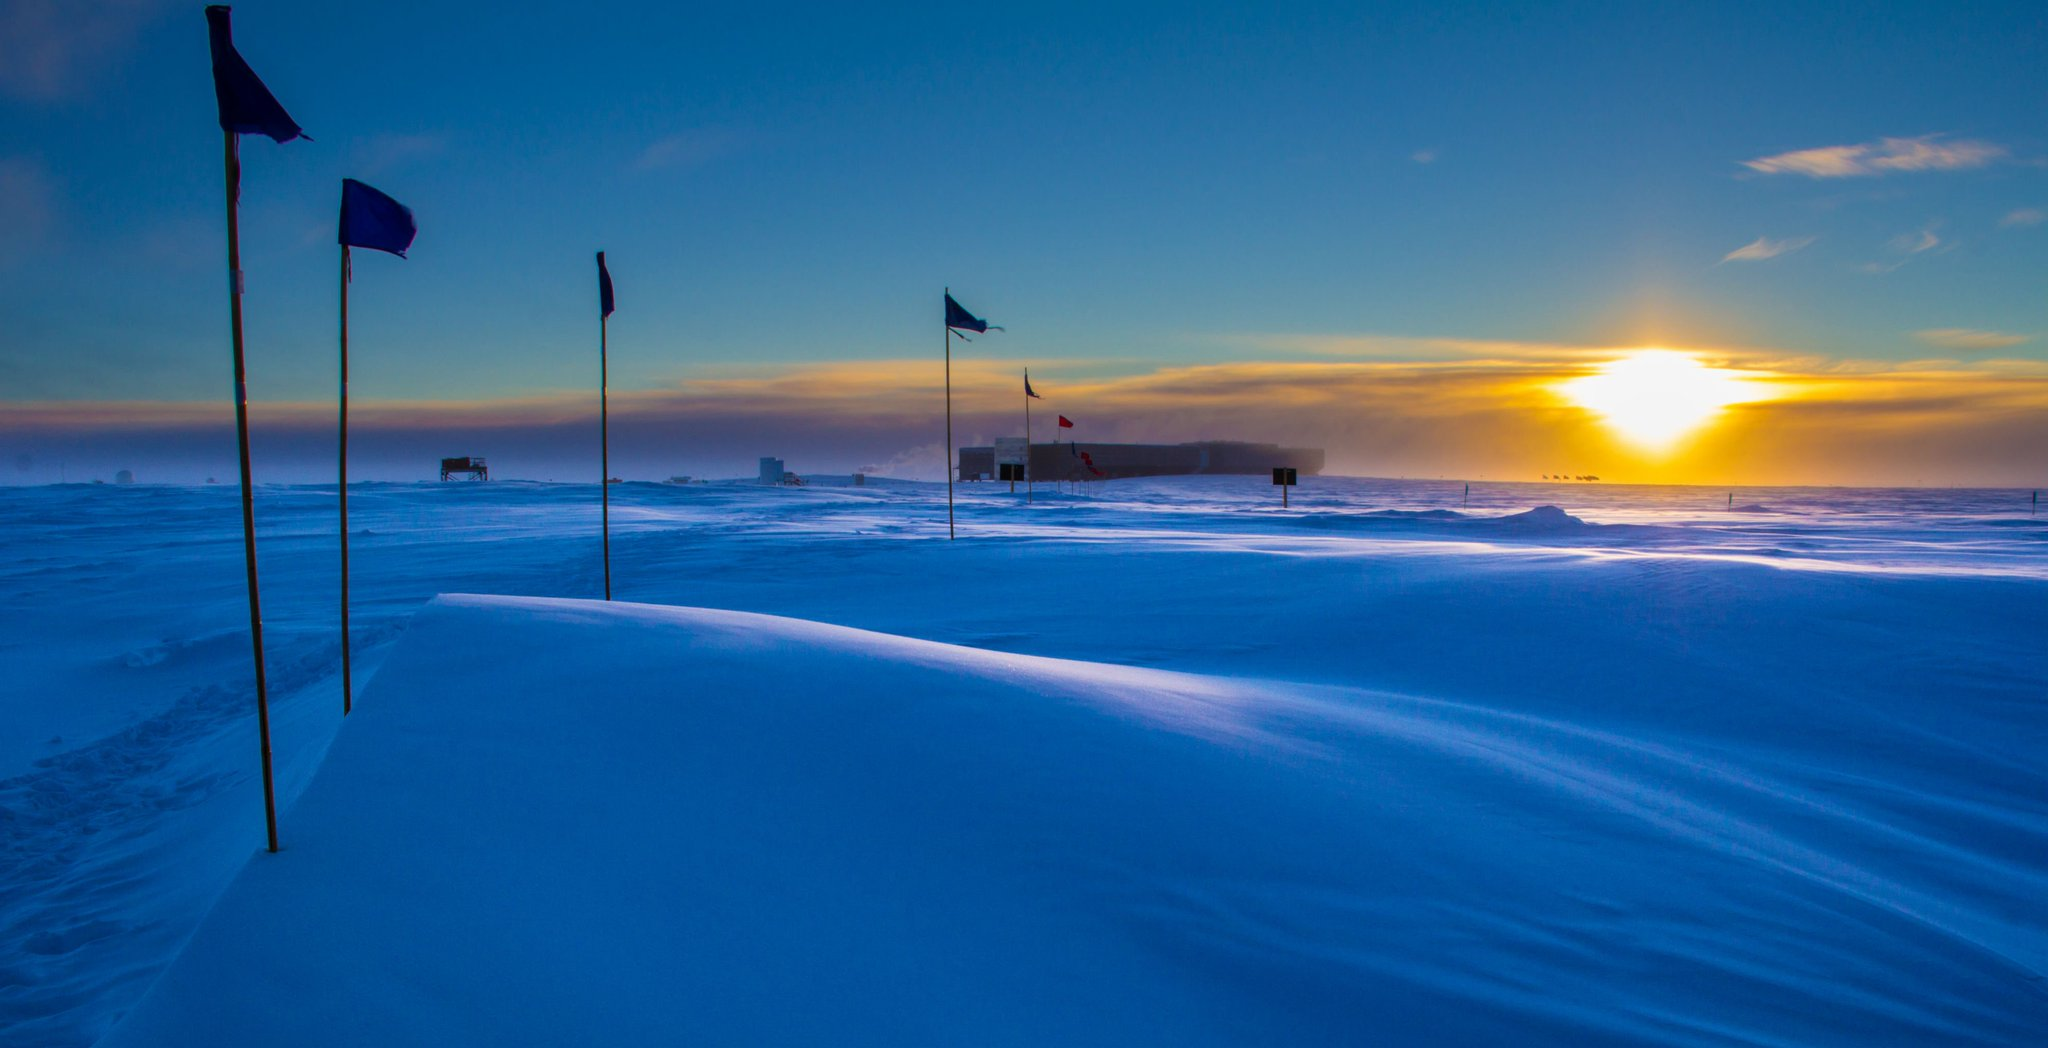 It's last light at #SouthPole today. Sun sets and won't rise until Oct for NOAA scientists https://t.co/Jd1ap2ALRT https://t.co/Q0f8UBIvob